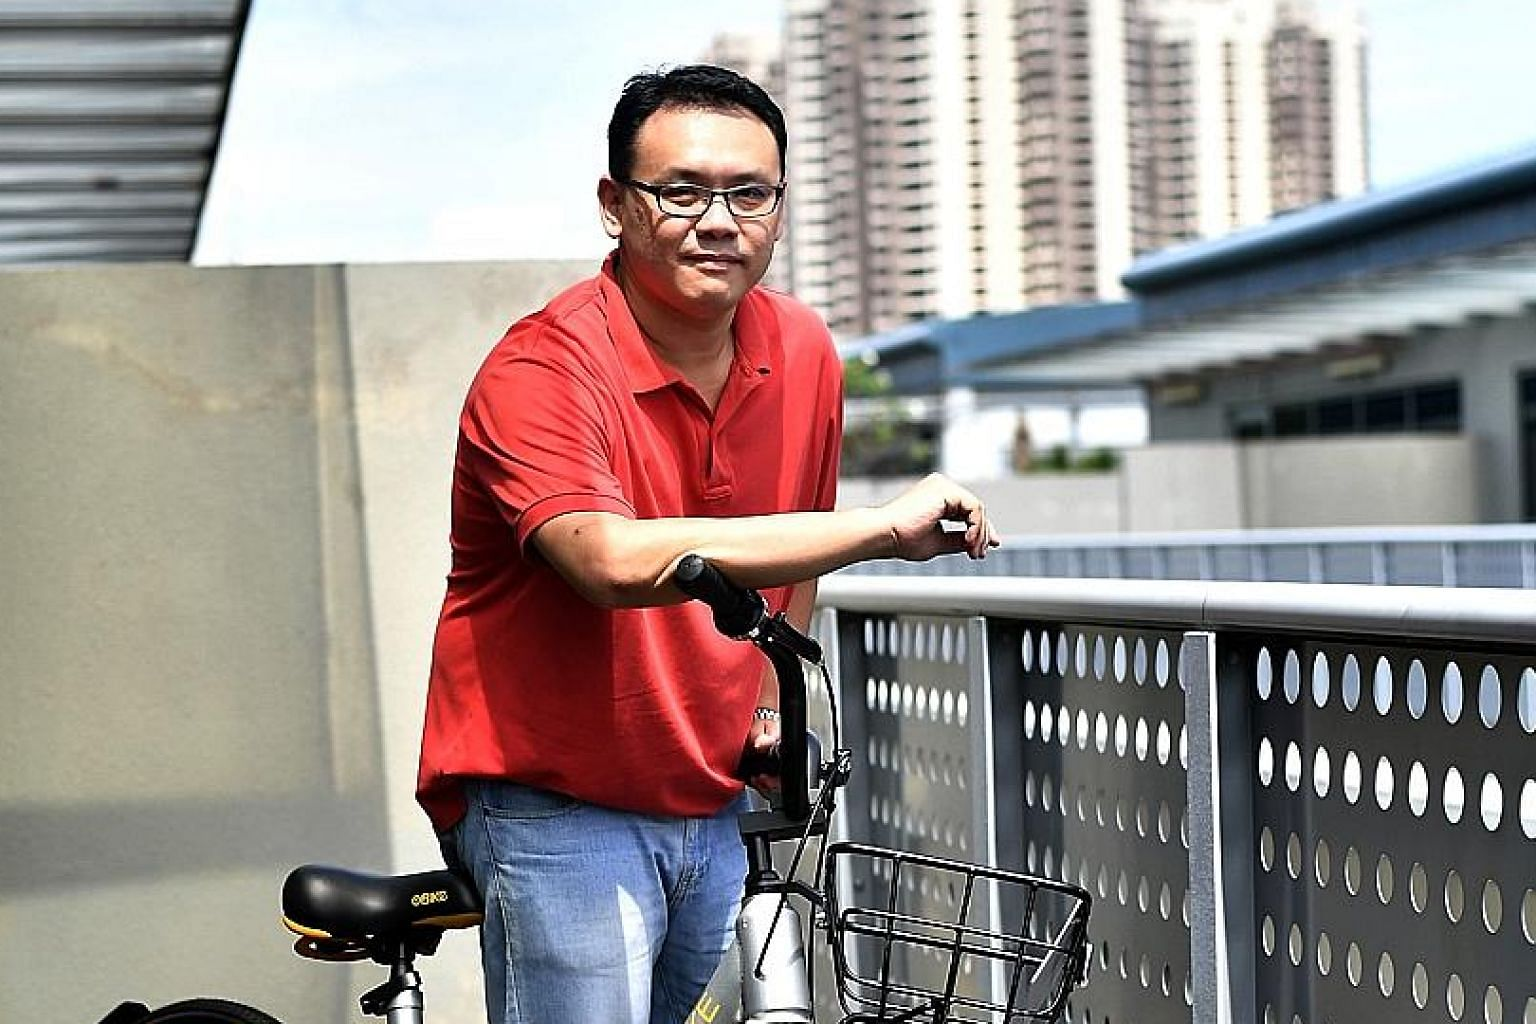 oBike general manager Elgin Ee is optimistic that as bike-sharing makes bicycles more accessible, more people will see cycling as a mode of transportation rather than as a leisure activity.